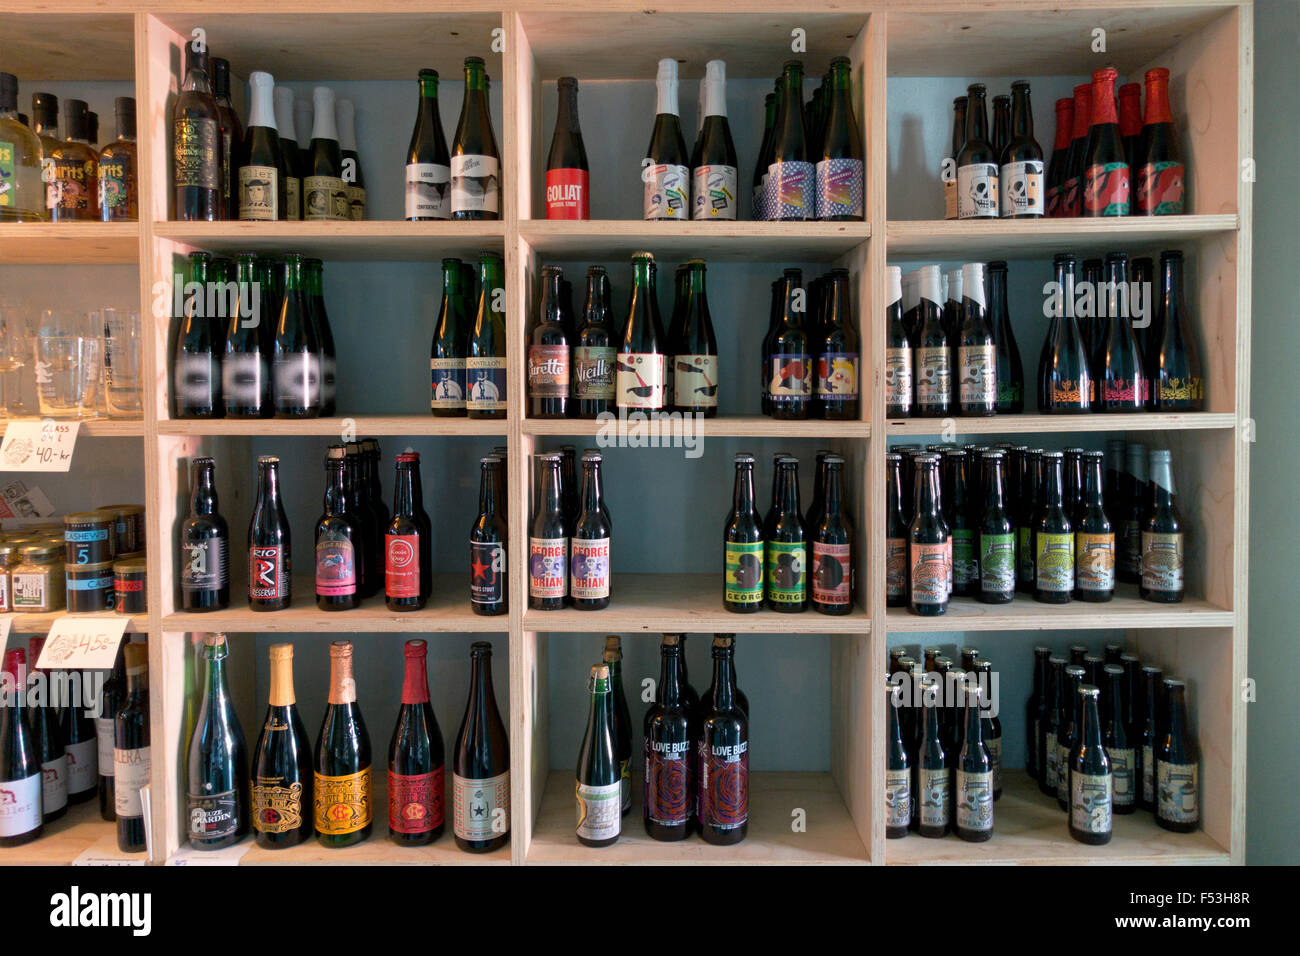 Mikkeller and Friends Bottle Shop neighbouring Mikkeller and Friends Bar on Stefansgade, Nørrebro, Copenhagen - Stock Image